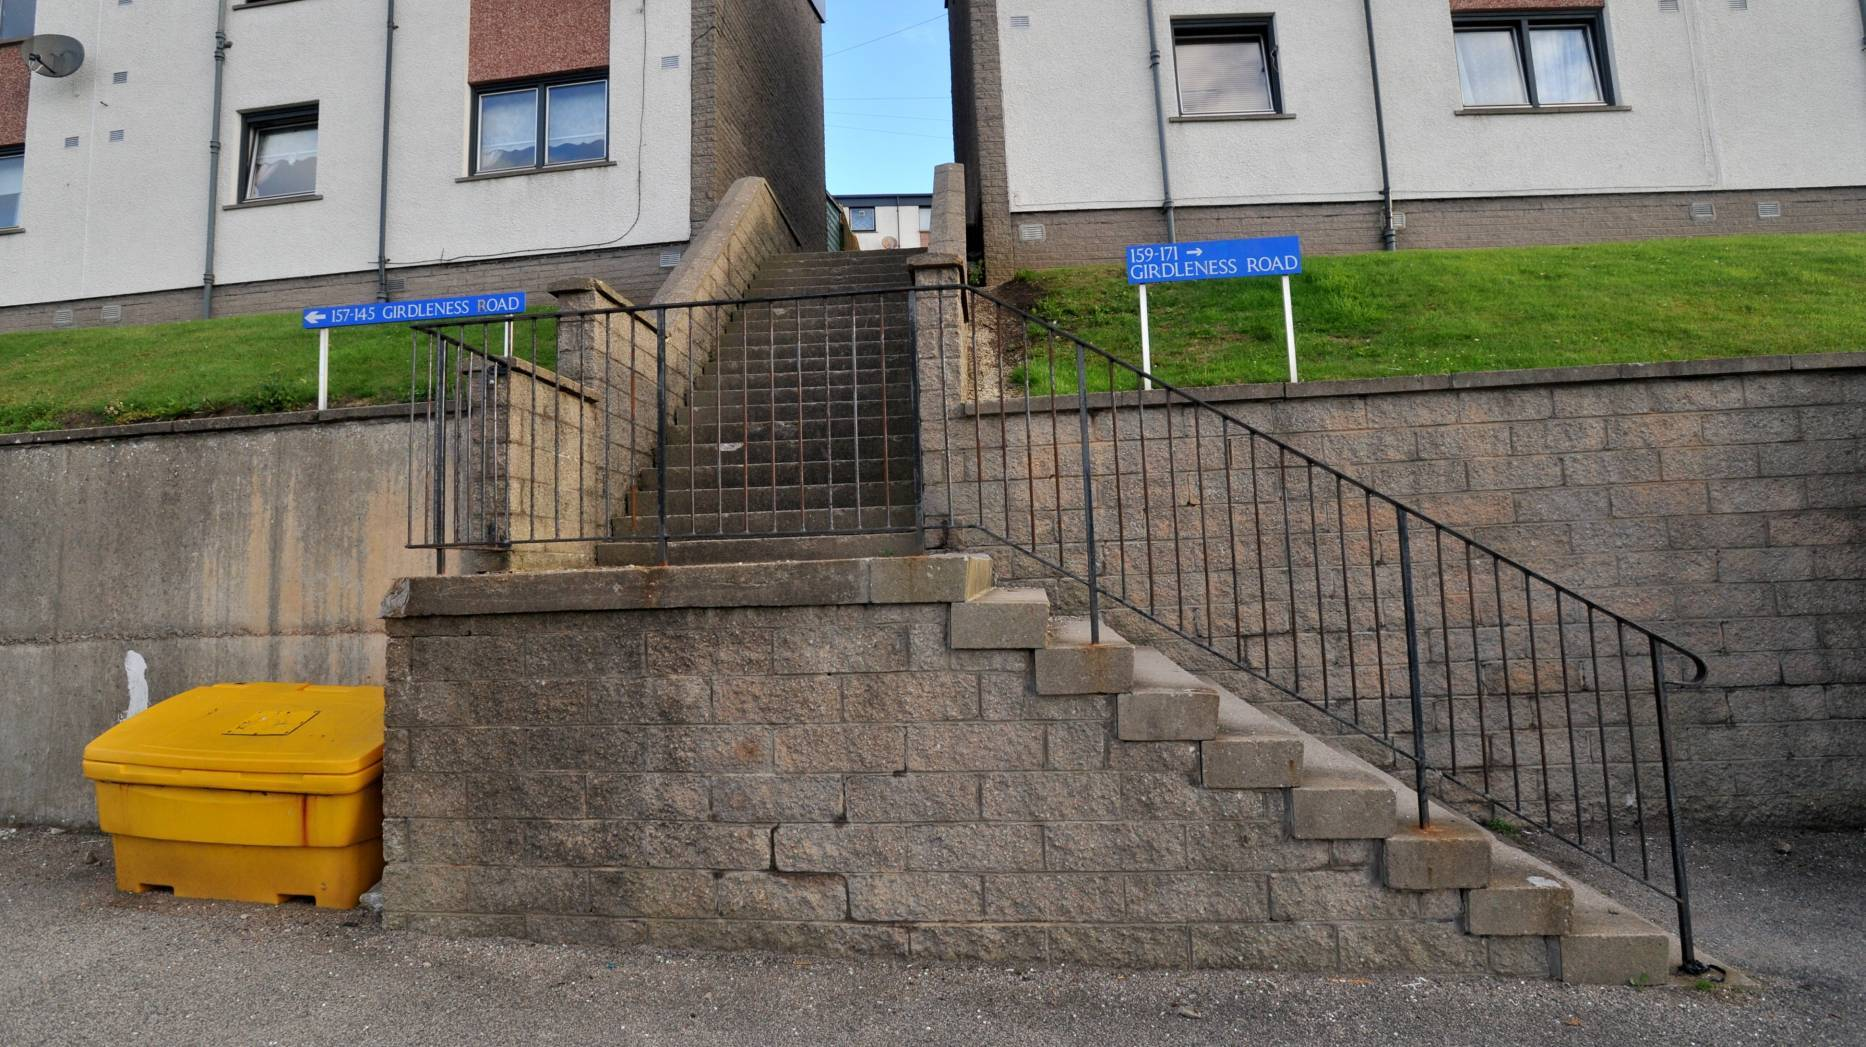 The pensioner had money taken after he fell on steps between Farquhar Road and Girdleness Road in Torry.